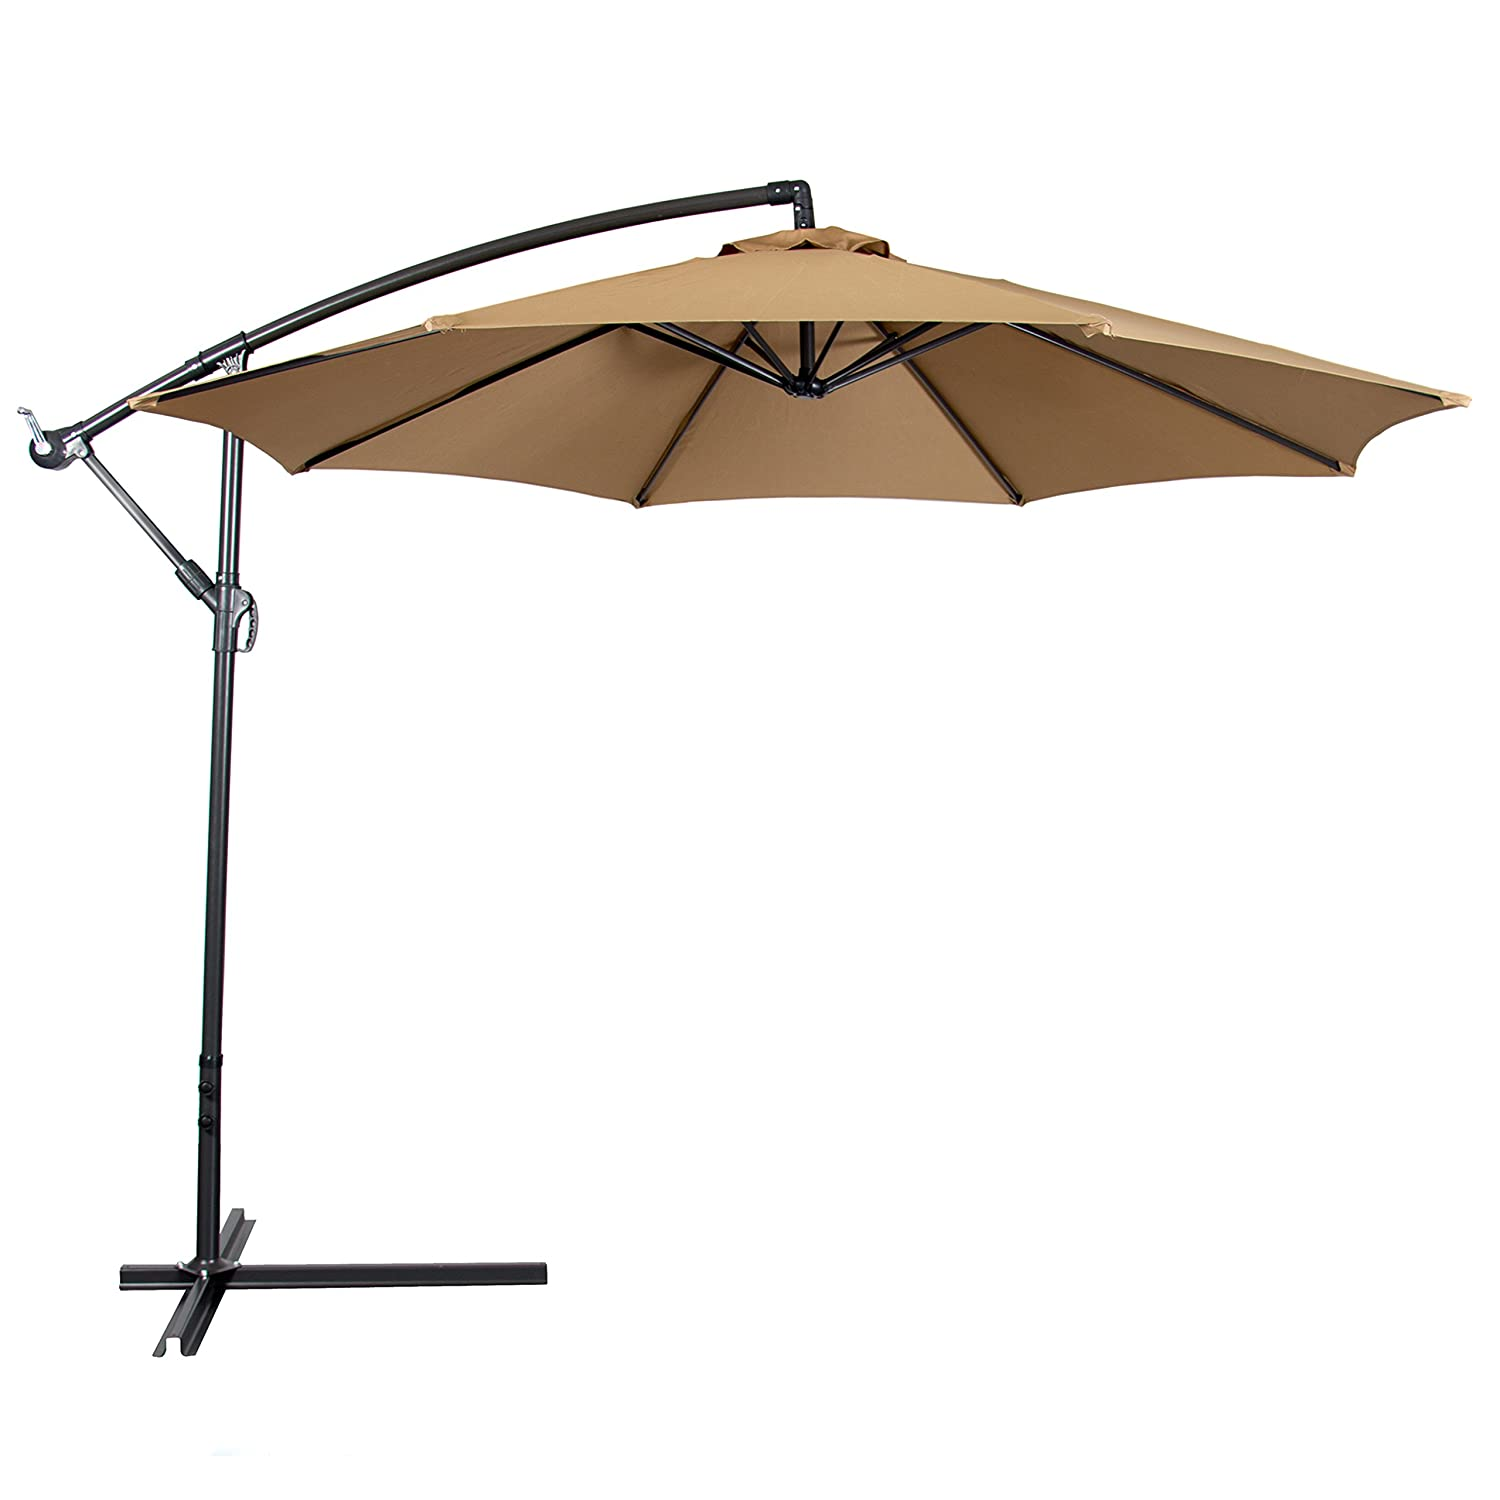 amazoncom best choice products patio umbrella offset 10 hanging umbrella outdoor market umbrella tan new garden outdoor - Amazon Patio Umbrella